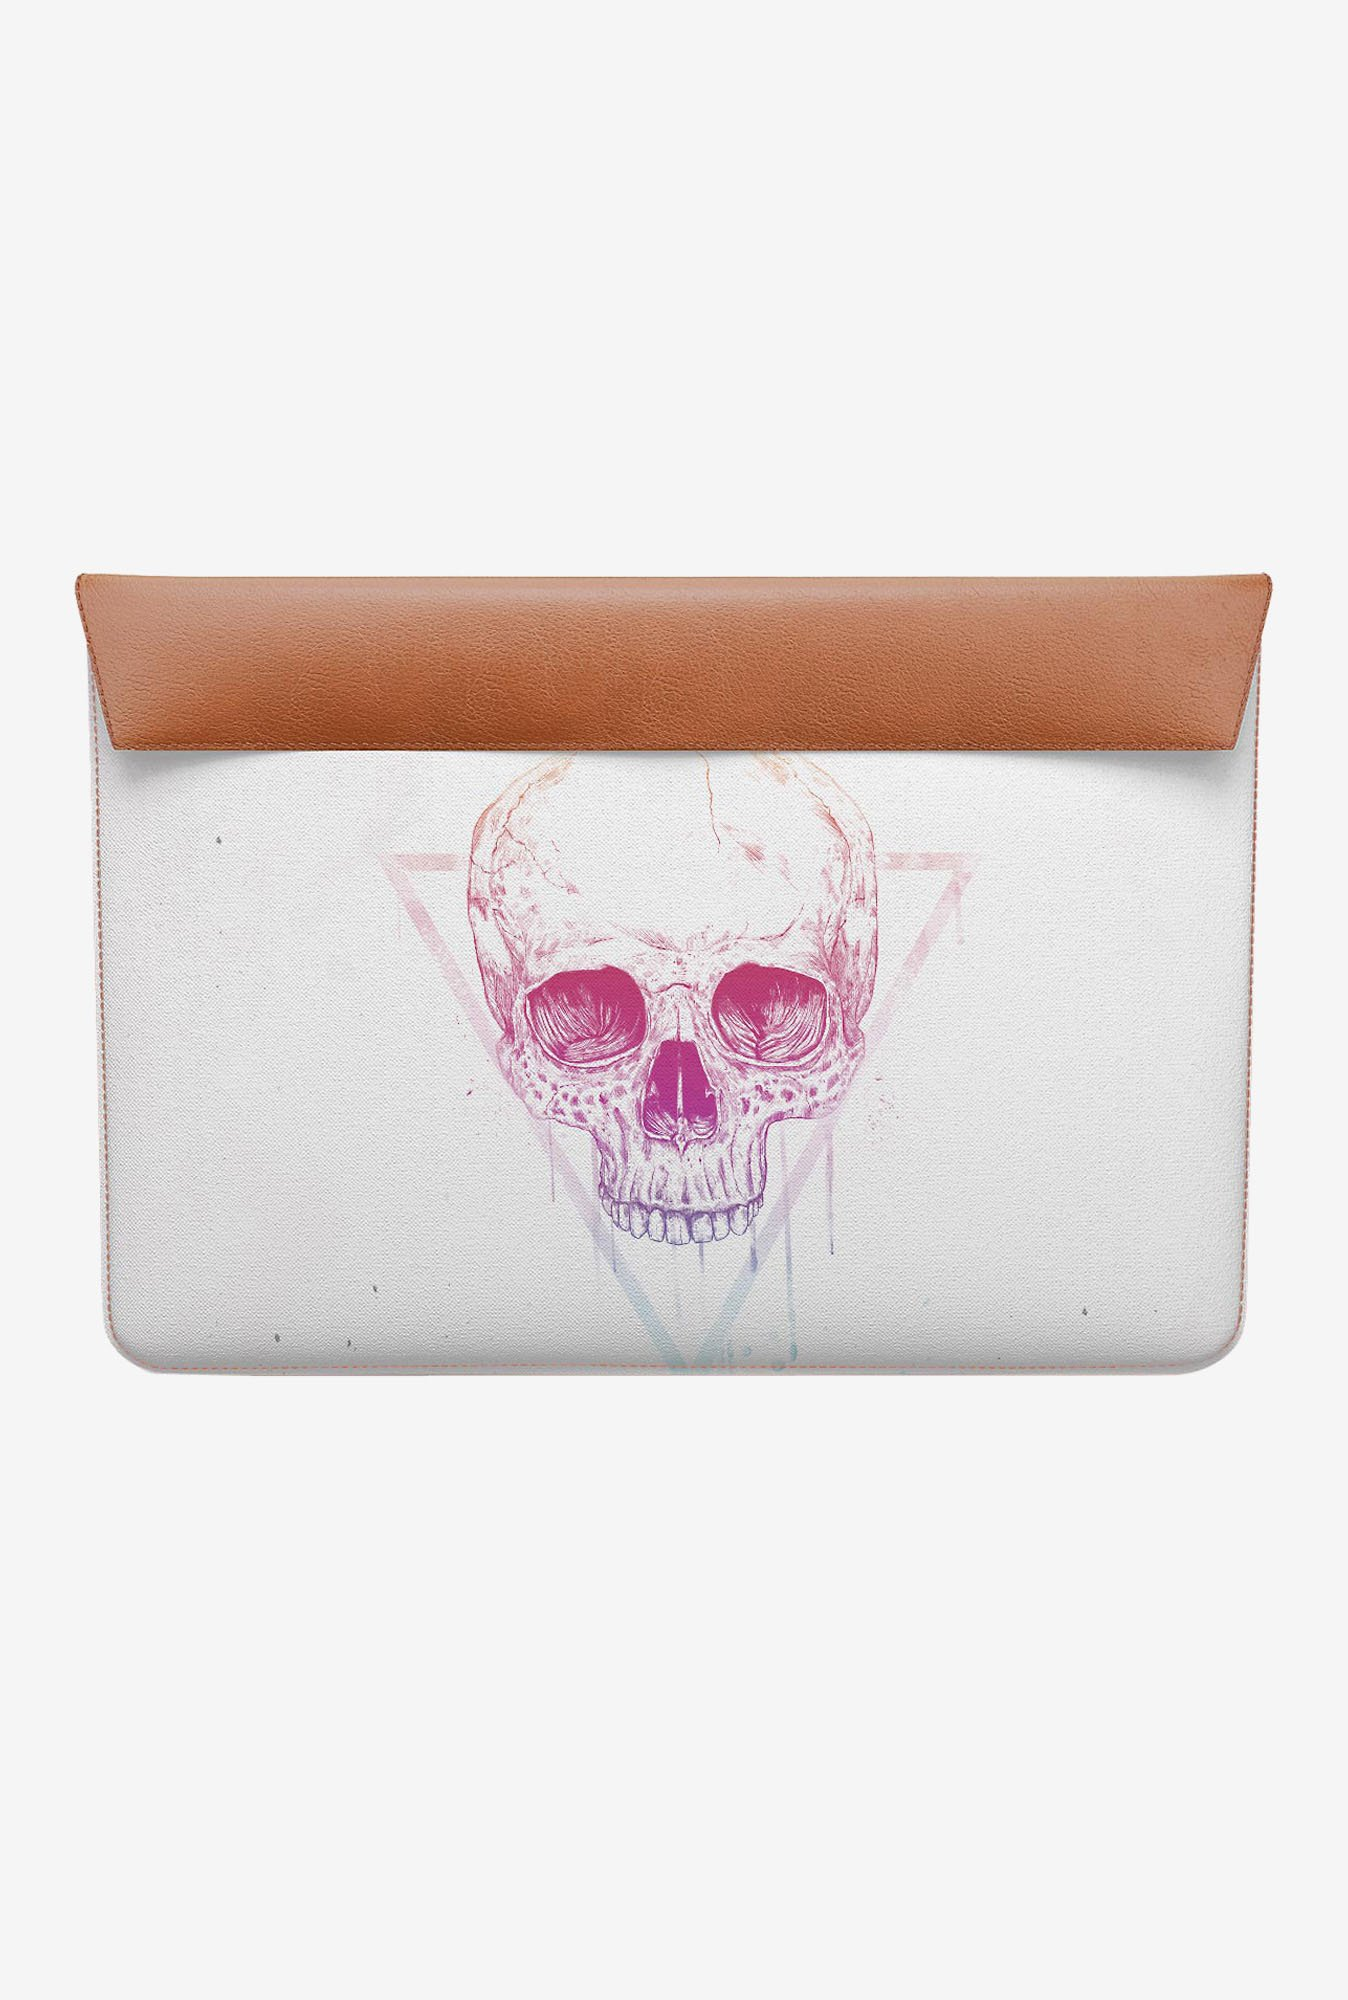 DailyObjects Skull Triangle MacBook 12 Envelope Sleeve